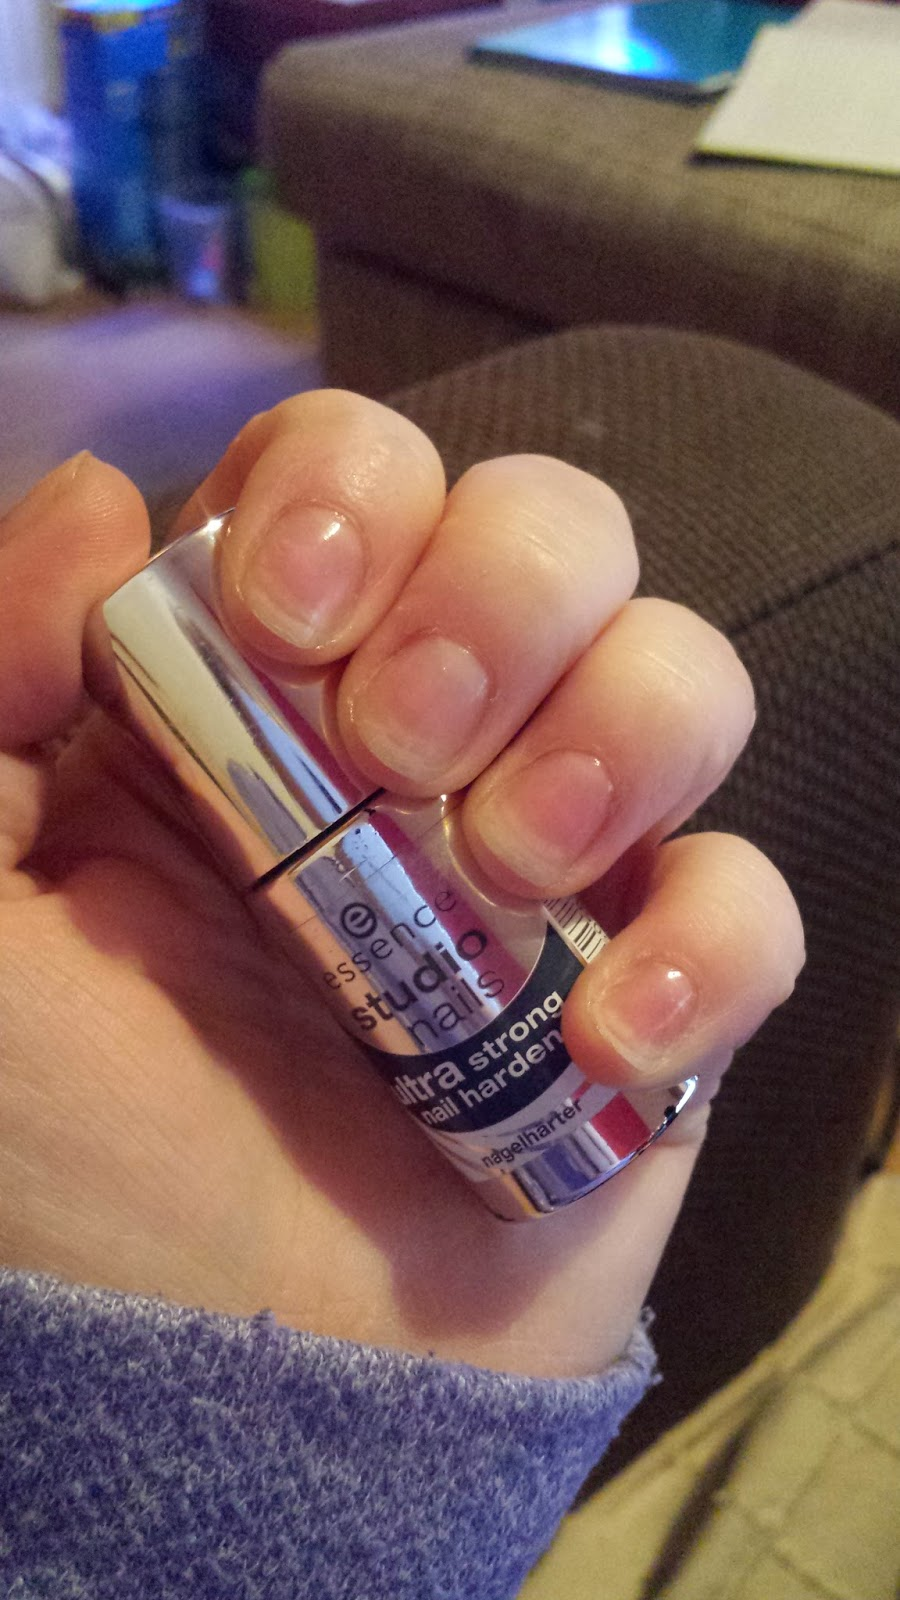 Essence ultra strong nail hardener rachsbeautique what do you think have you ever come across a product like this that works solutioingenieria Image collections